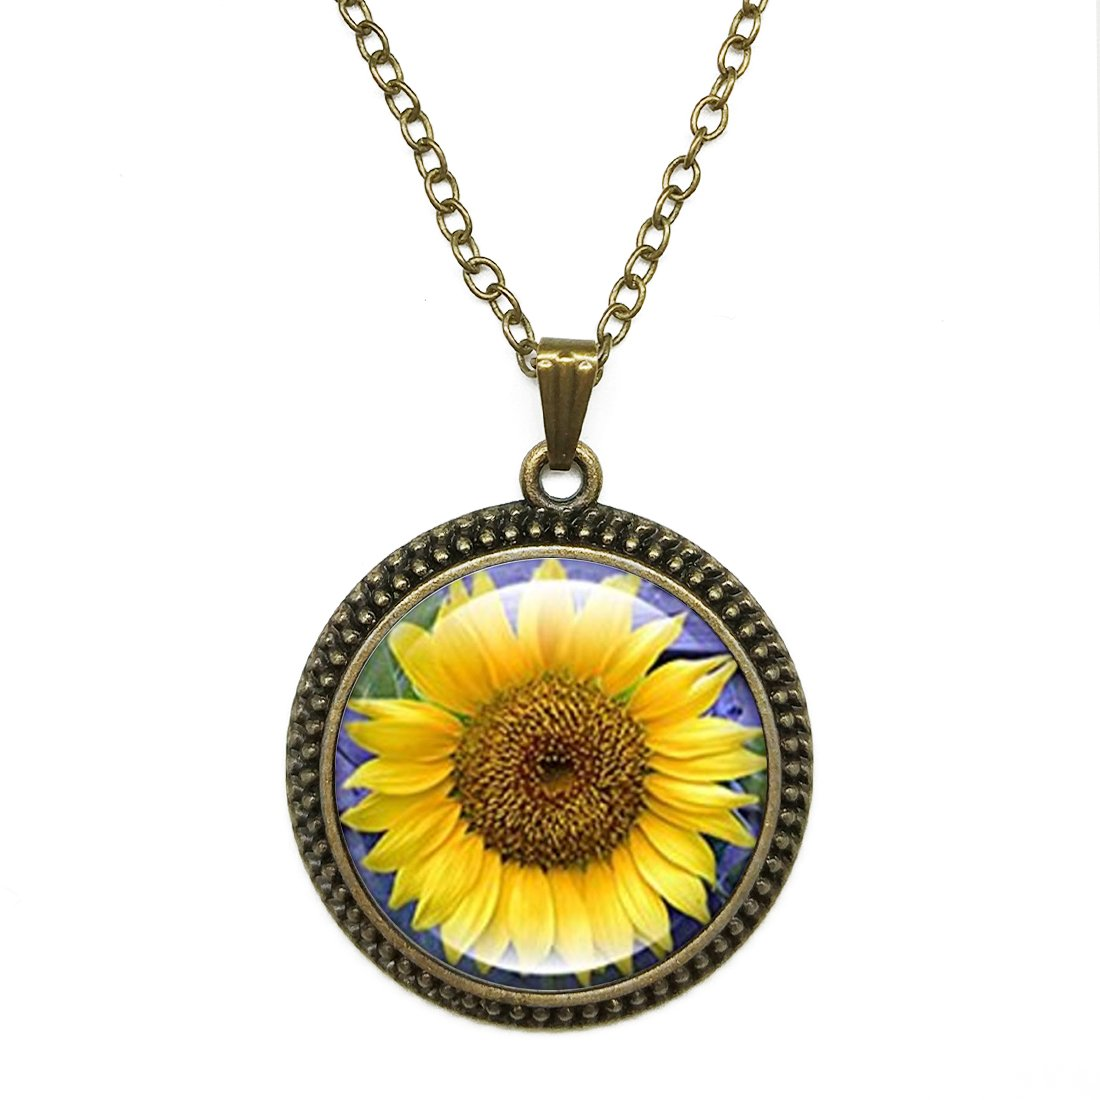 JEANCZ Antique Bronze Finish With Cable Chain Sunflower Vintage Style Pendant Necklace Personalized Necklace